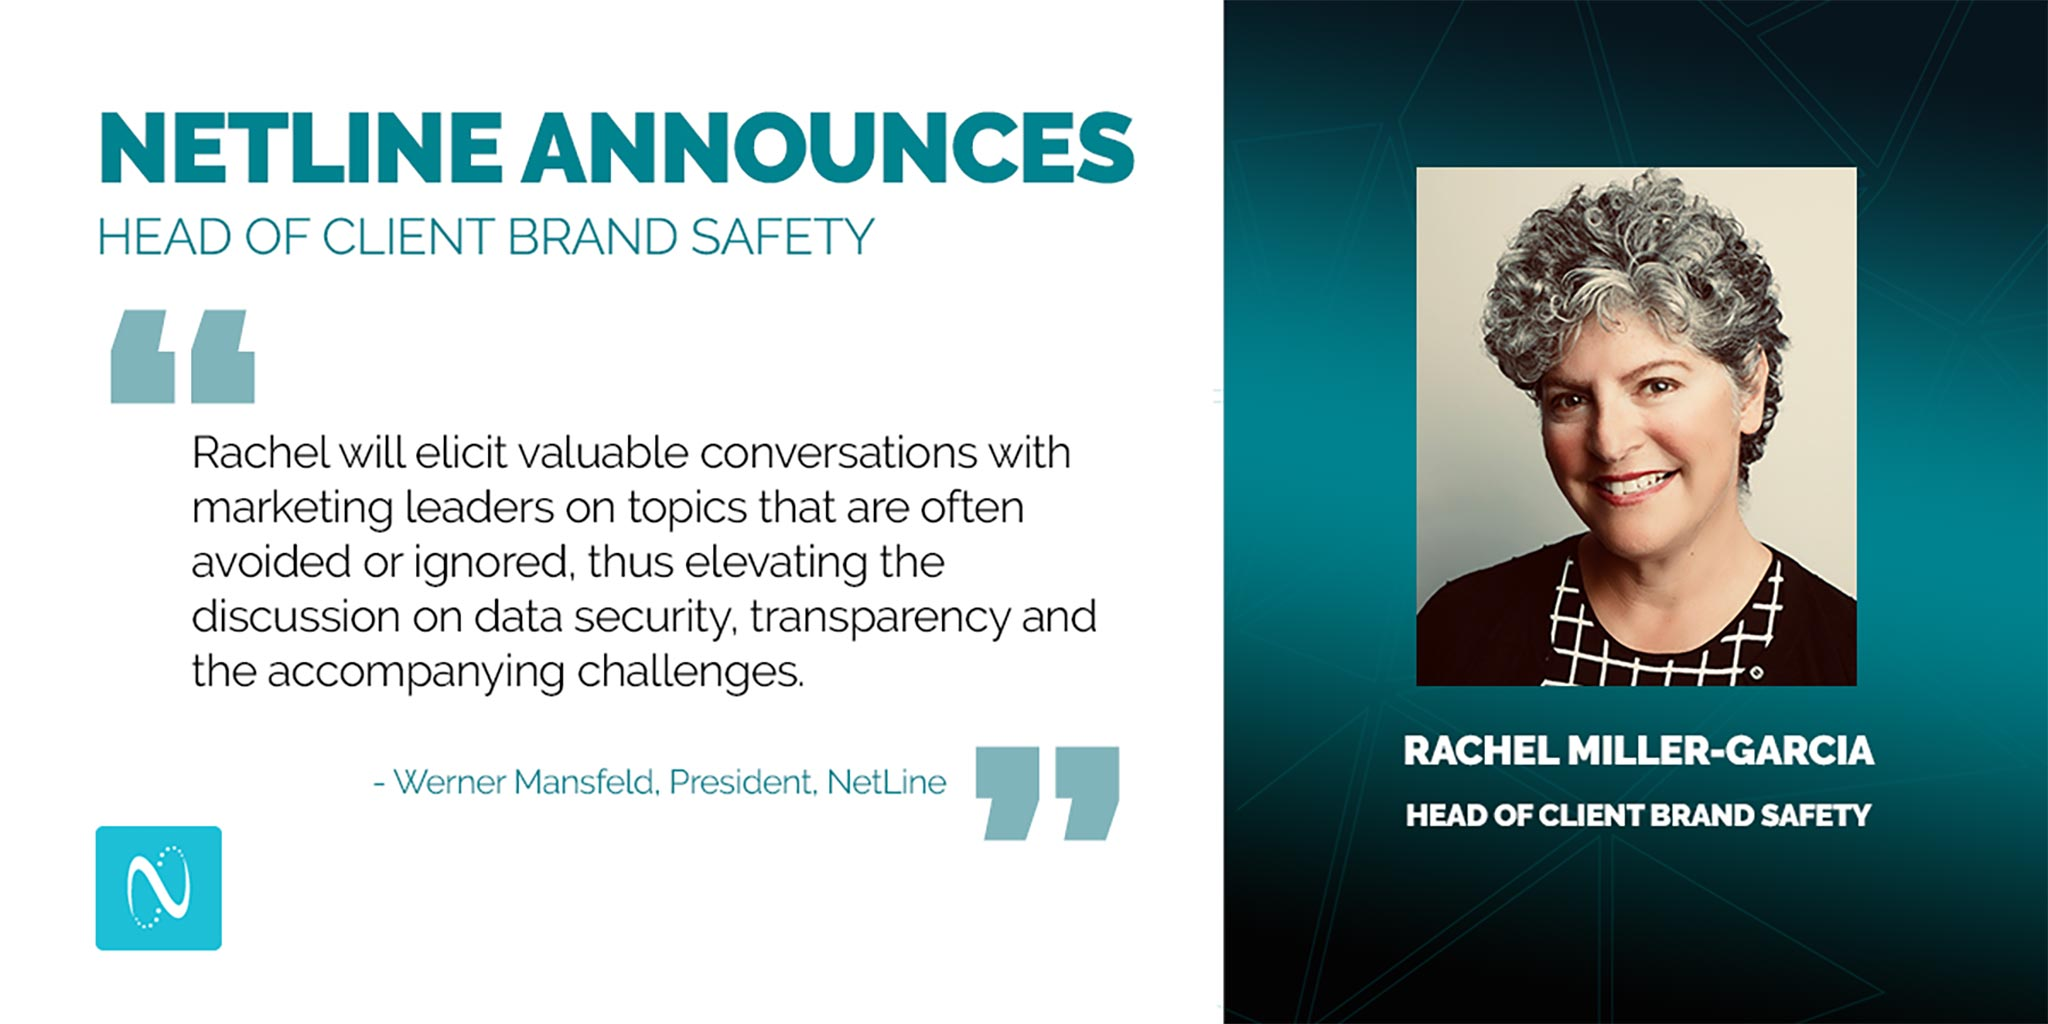 NetLine Announces Head of Client Brand Safety to Support Industry Awareness on Data Privacy